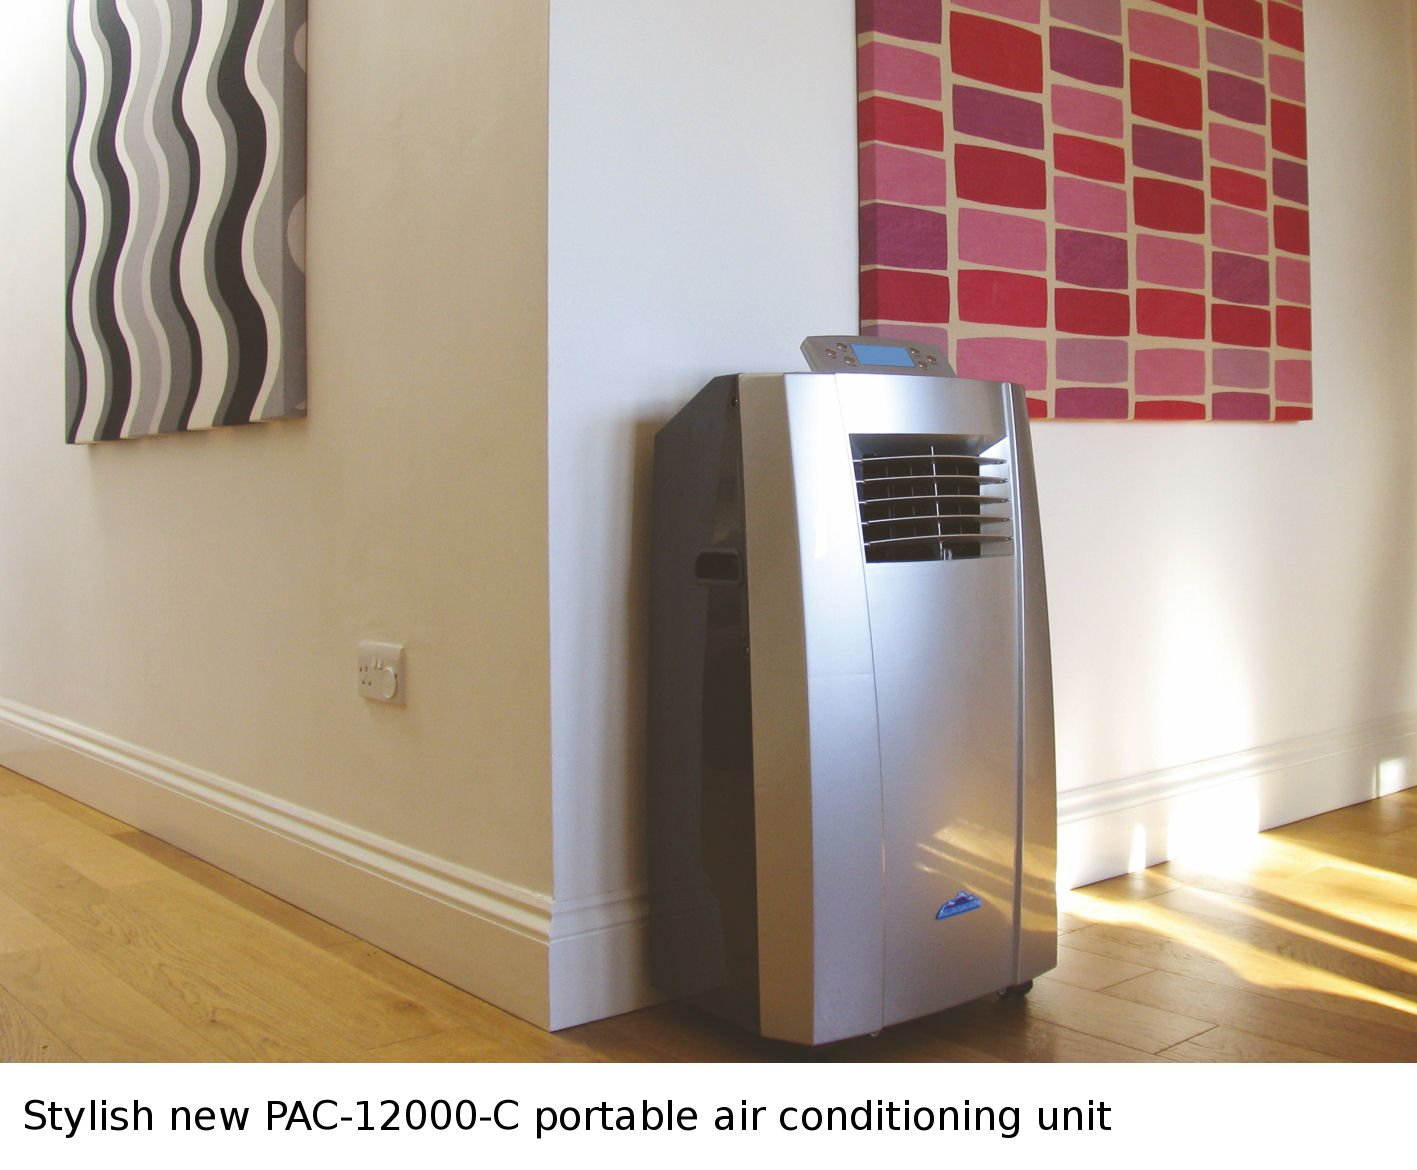 Air conditioner 2012 for Small room portable air conditioners